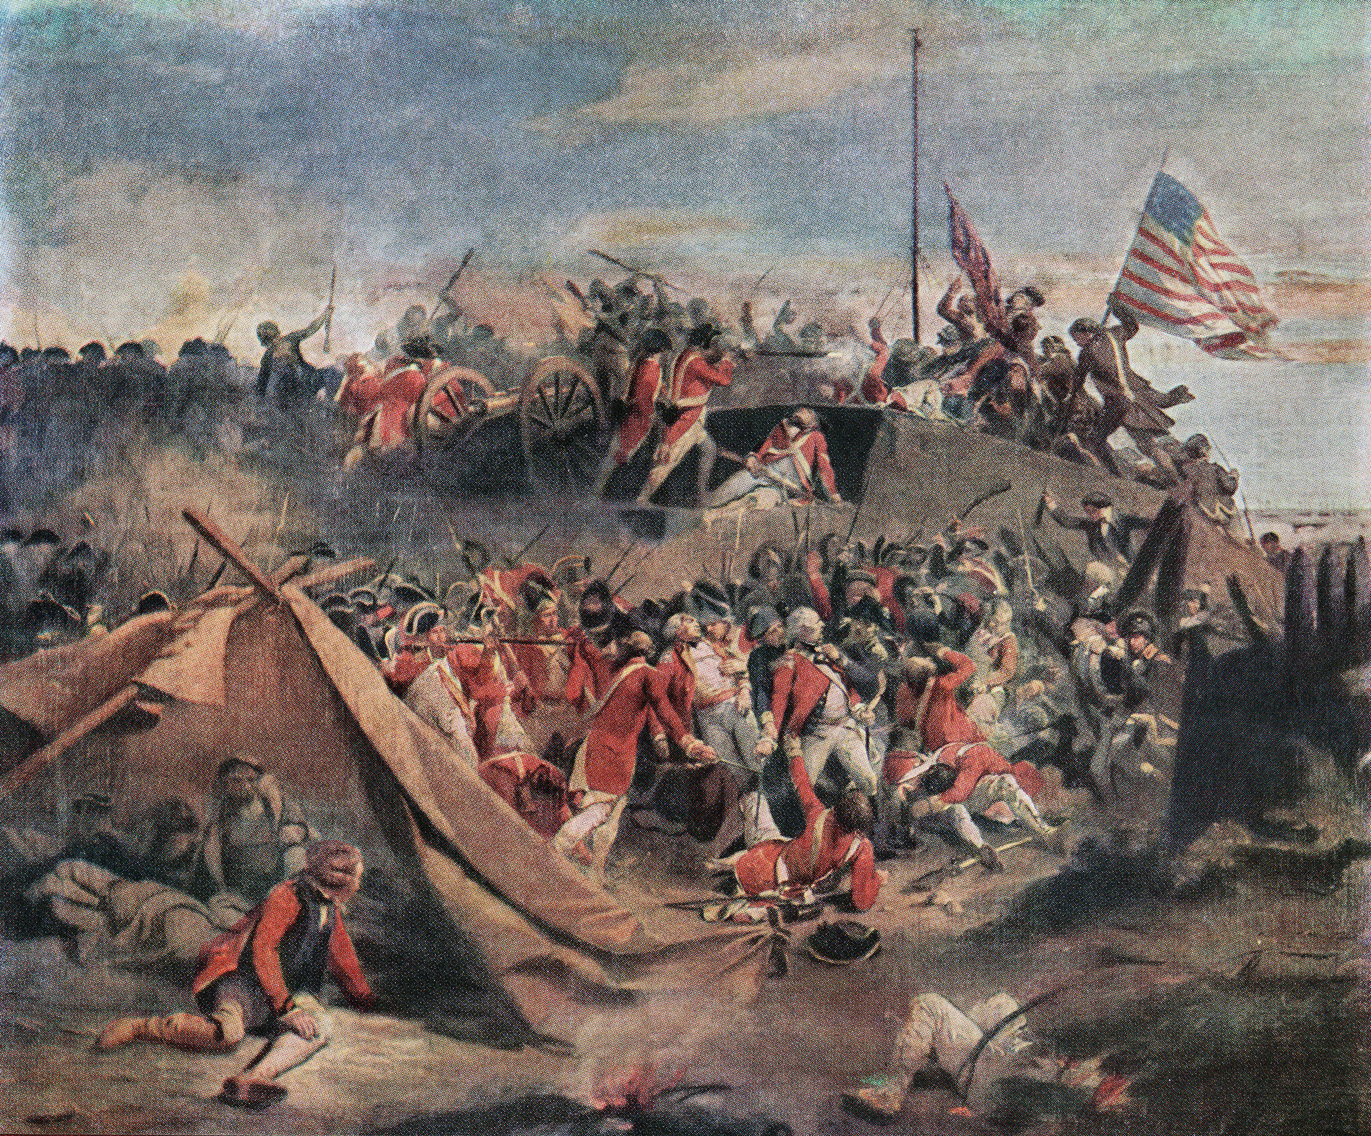 battle of yorktown Learn more about general washington's great victory at the battle of yorktown in 1781 learn more about how he and his french allies shaped this pivotal campaign in the american revolution.